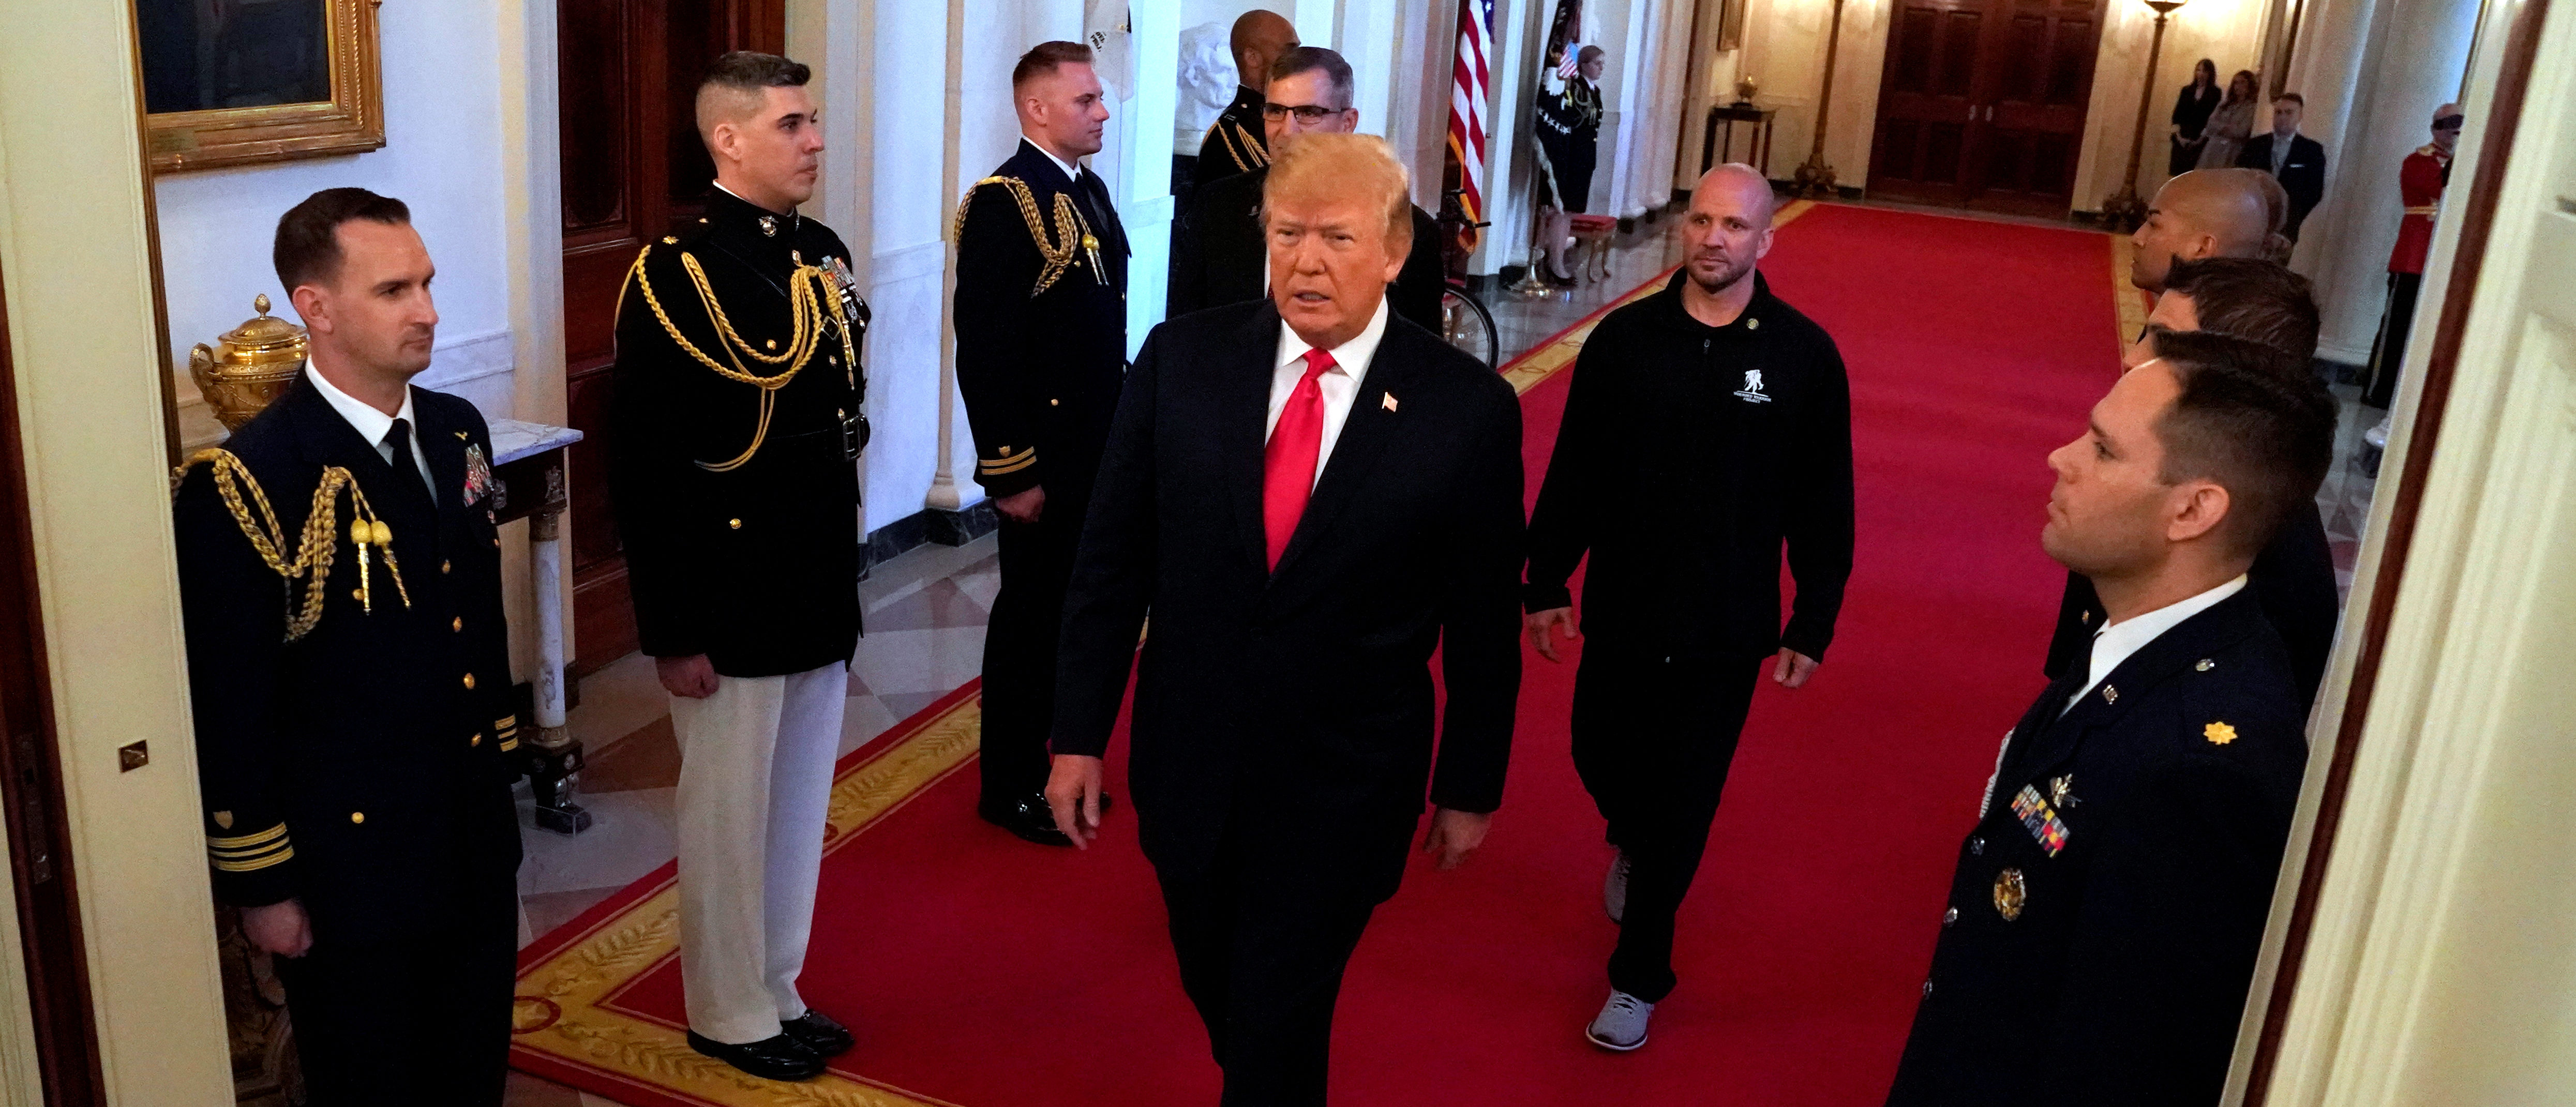 President Donald Trump arrives for a Wounded Warrior Project Soldier Ride event at the White House in Washington. April 26, 2018. REUTERS/Kevin Lamarque